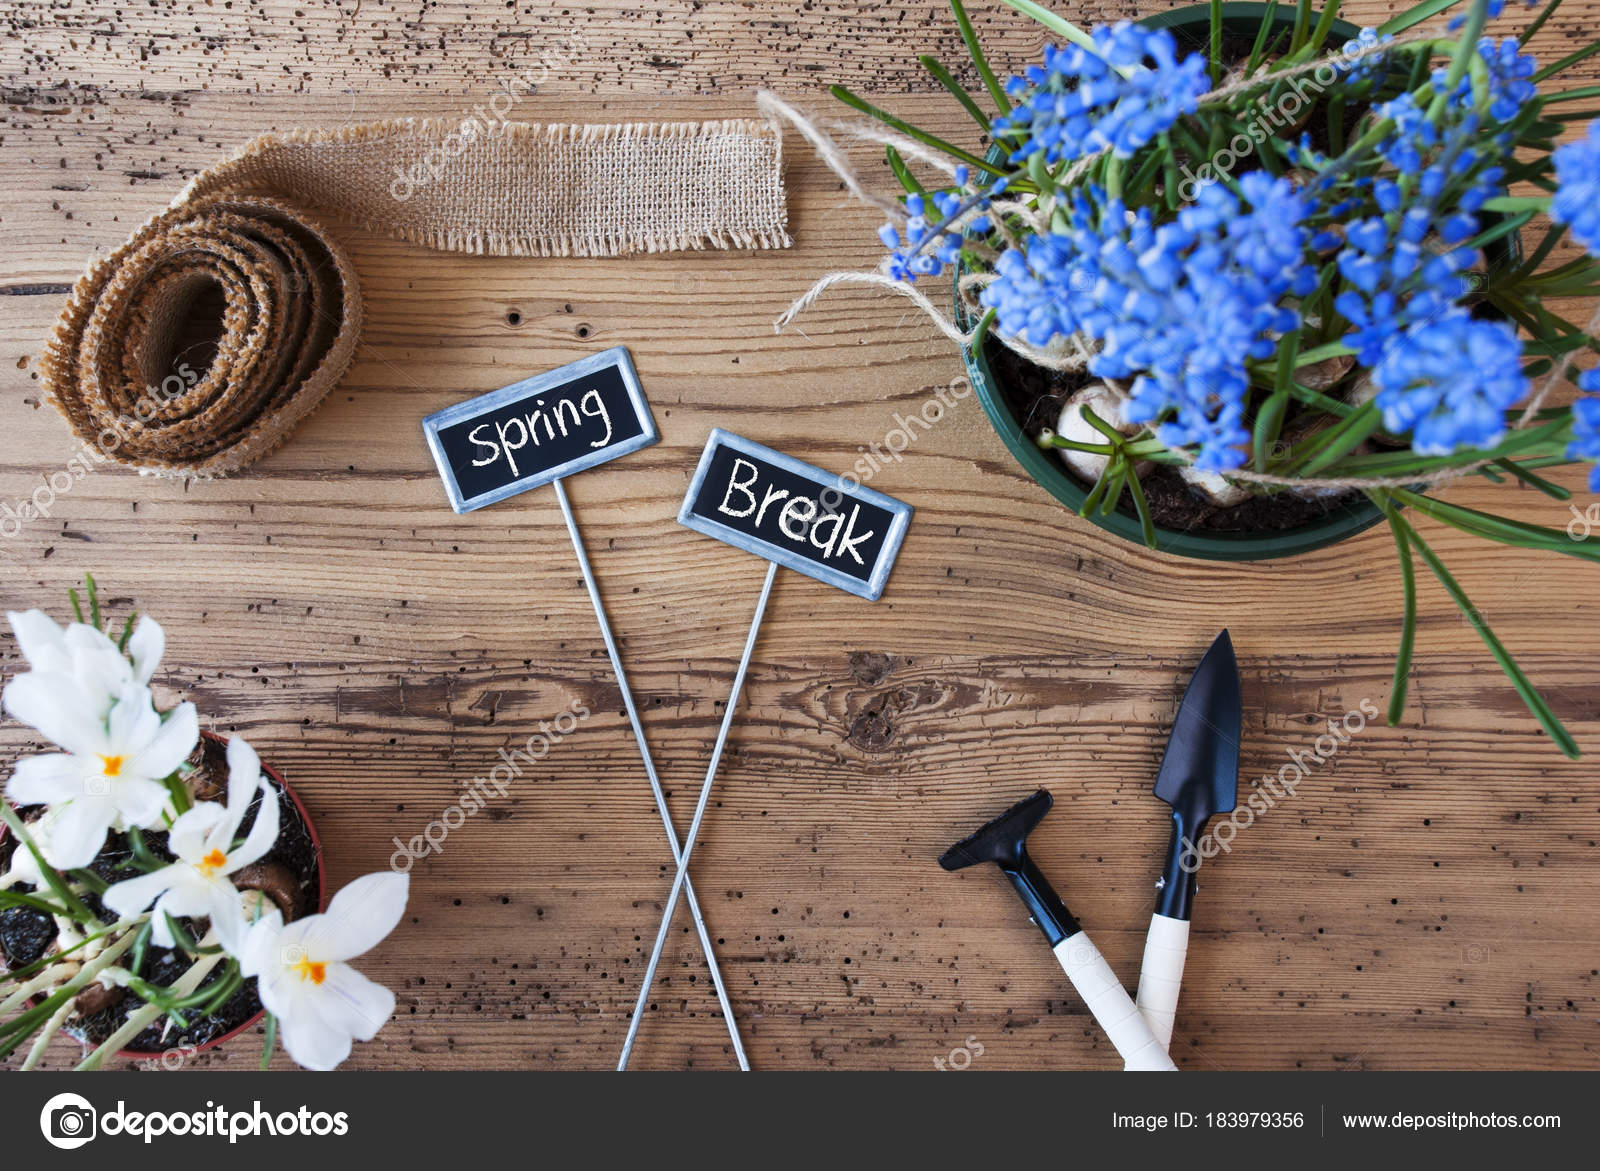 Flowers signs text spring break stock photo nelosa 183979356 two signs with english text spring break spring flowers like grape hyacinth and crocus gardening tools like rake and shovel hemp fabric ribbon mightylinksfo